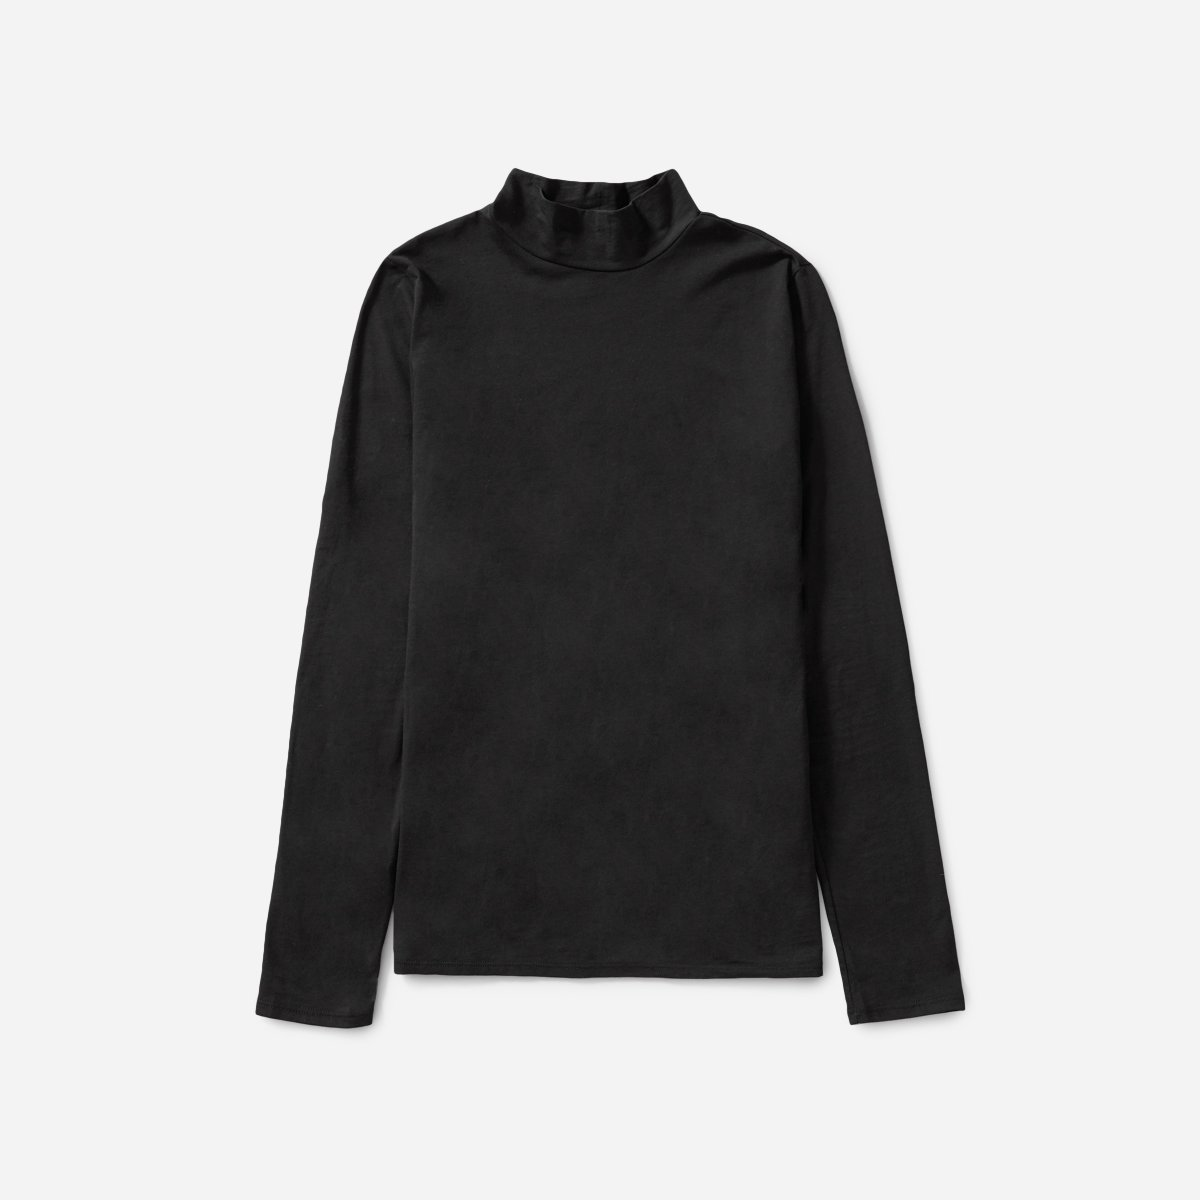 Classic Black Turtleneck - This is a must, especially if you travel often. Throwing on a black turtleneck will keep you warm and comfortable, and it looks chic.